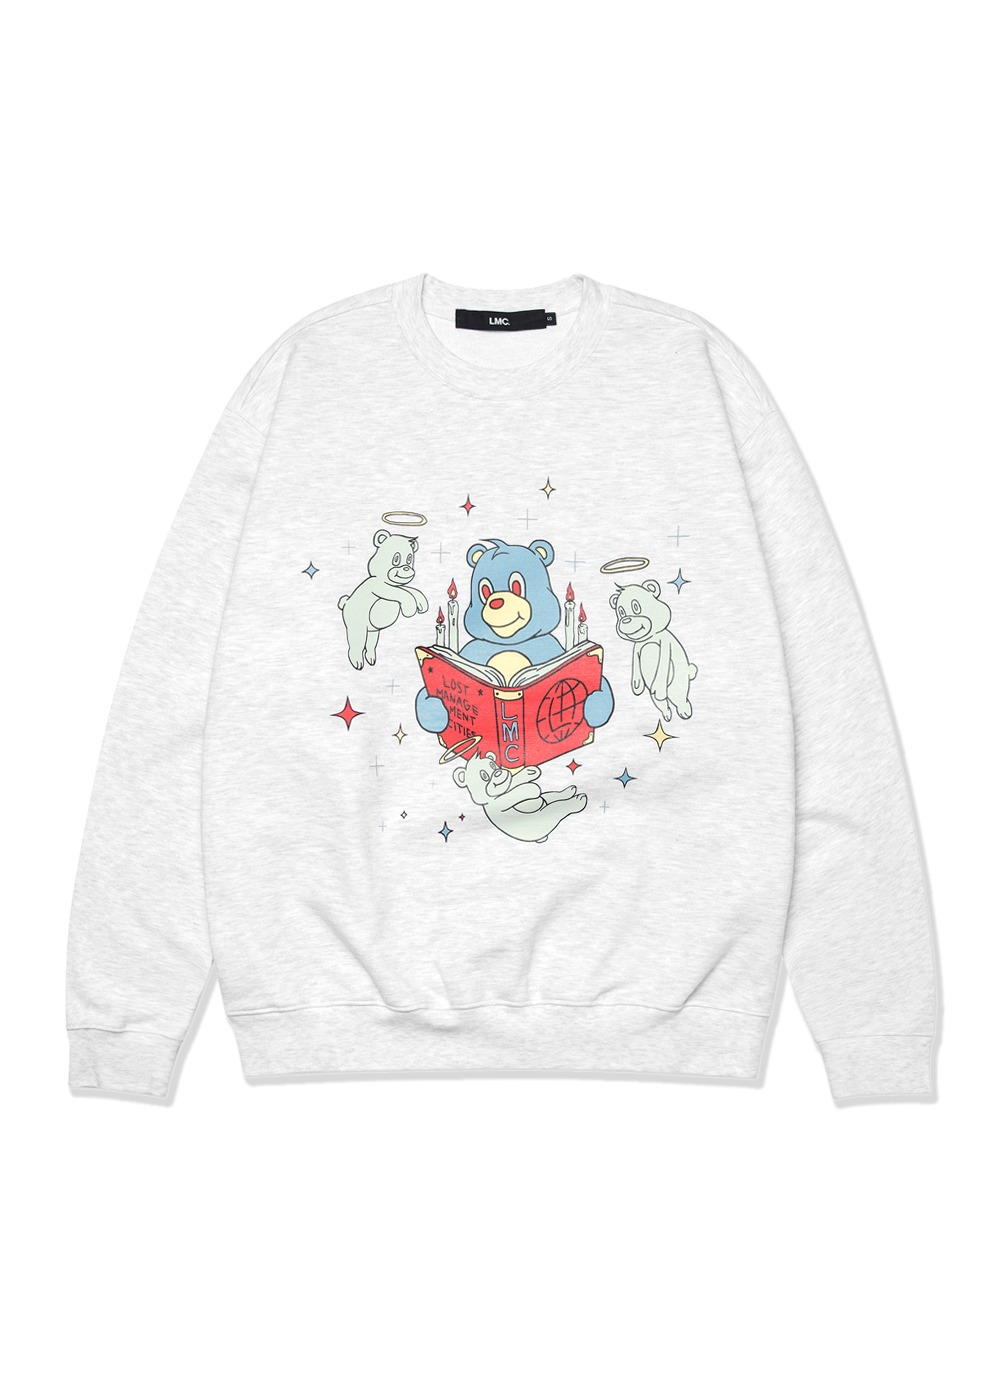 LMC REBIRTH BEAR SWEATSHIRT lt. heather gray